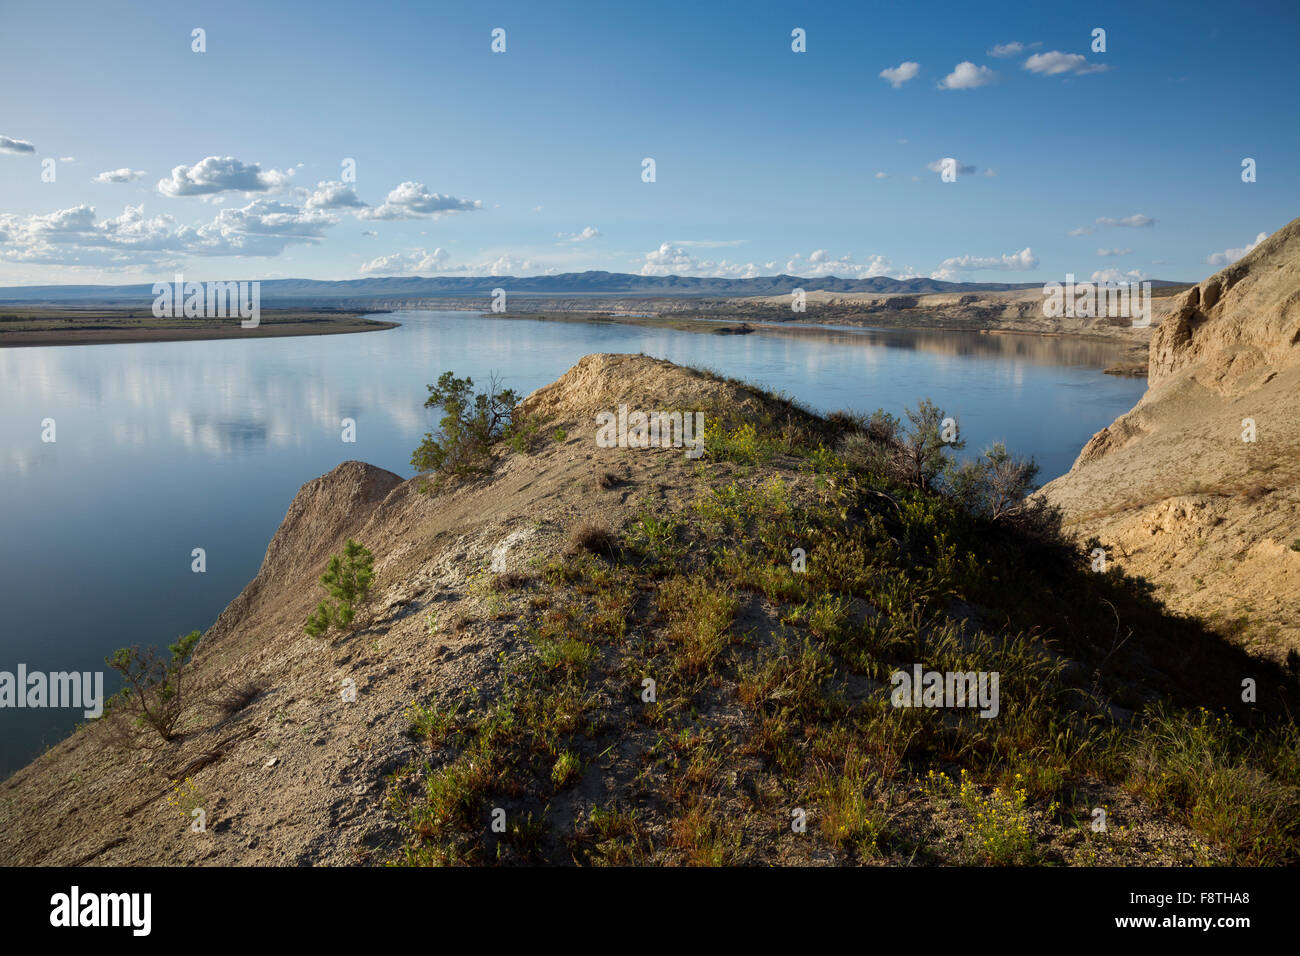 WA12293-00...WASHINGTON - One of the White Bluffs rising above the Columbia River at the Hanford Reach National - Stock Image